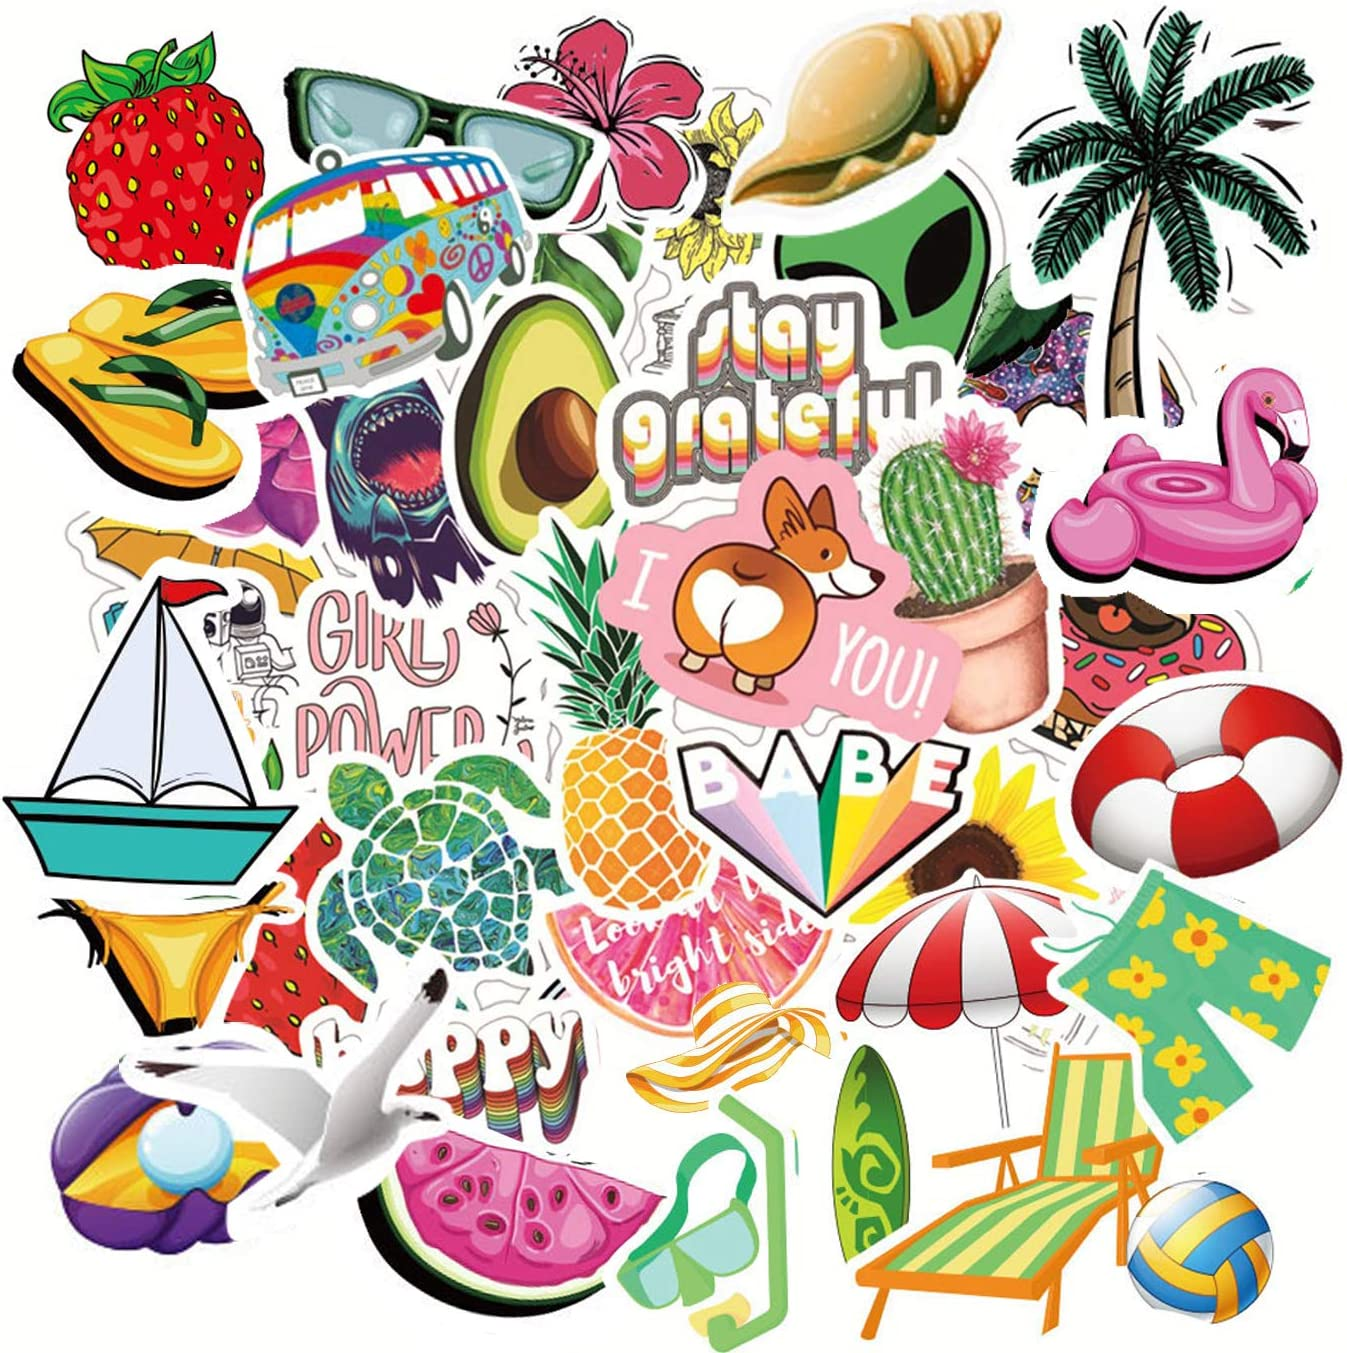 100Pcs Cute Laptop Stickers for Water Bottle Waterproof Trendy Aesthetic Fruit Stickers for Teens and Girls 100% Vinyl Decal Stickers (Fruit Cute)